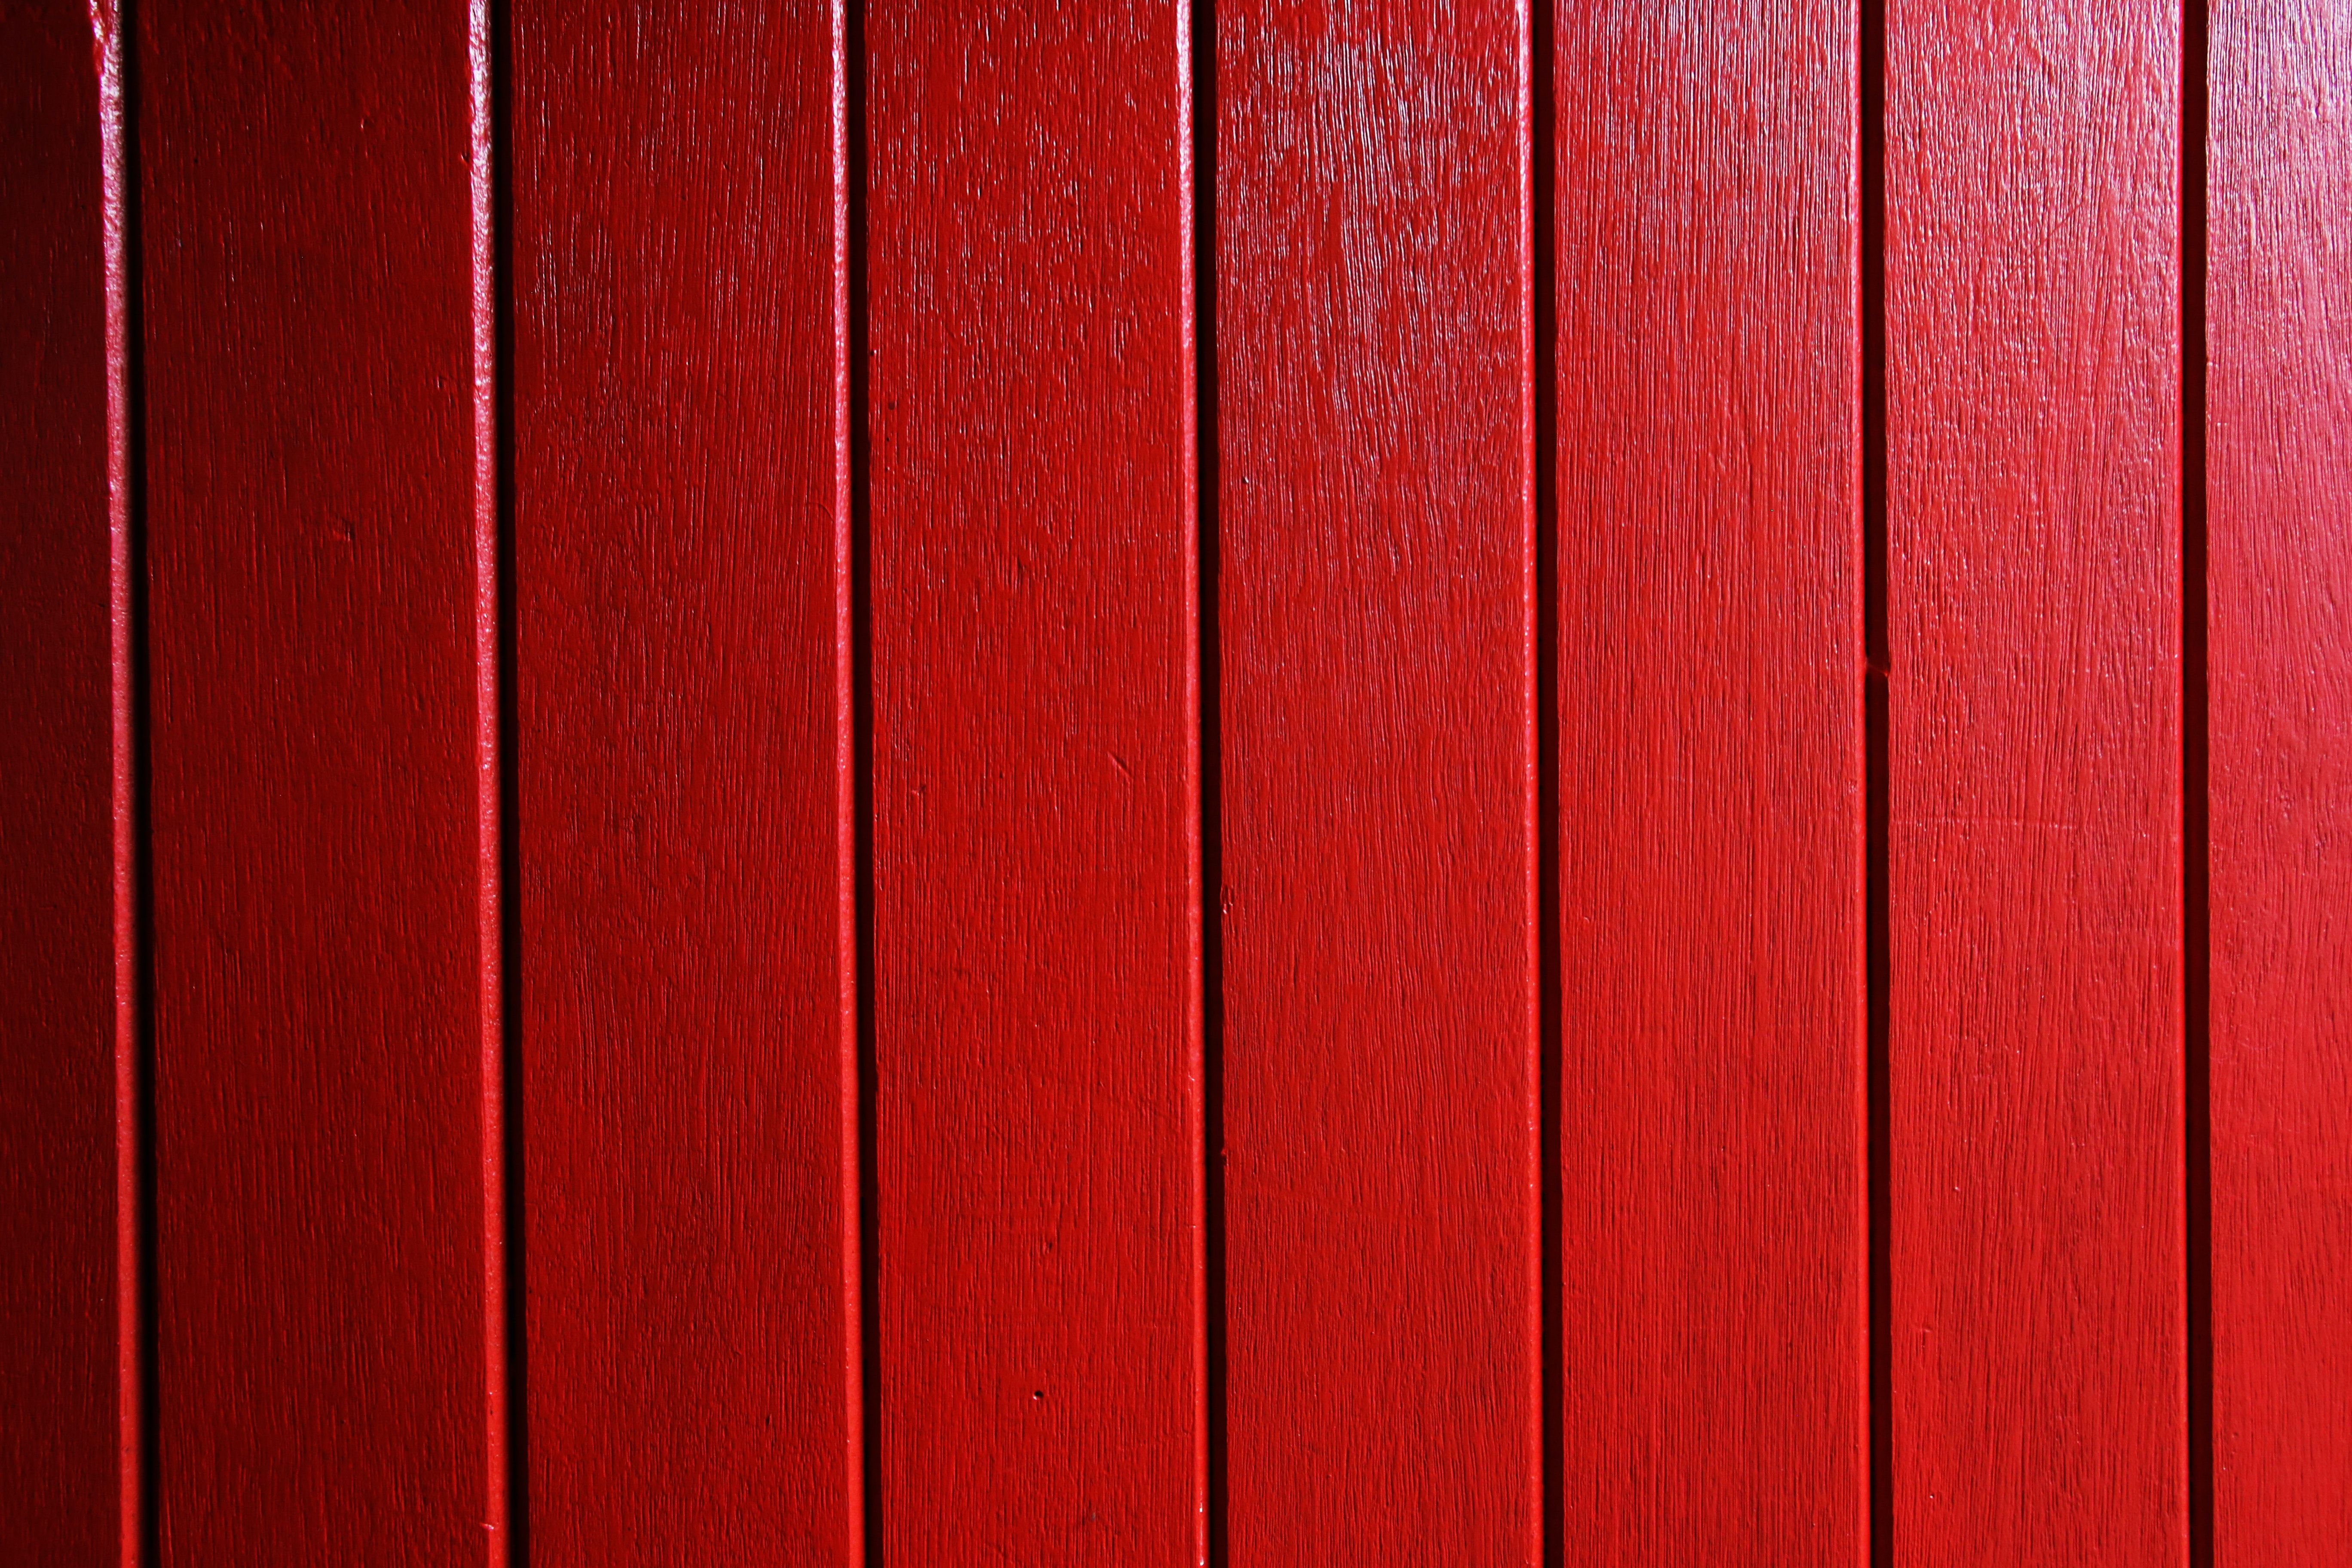 Red Wooden Surface 183 Free Stock Photo